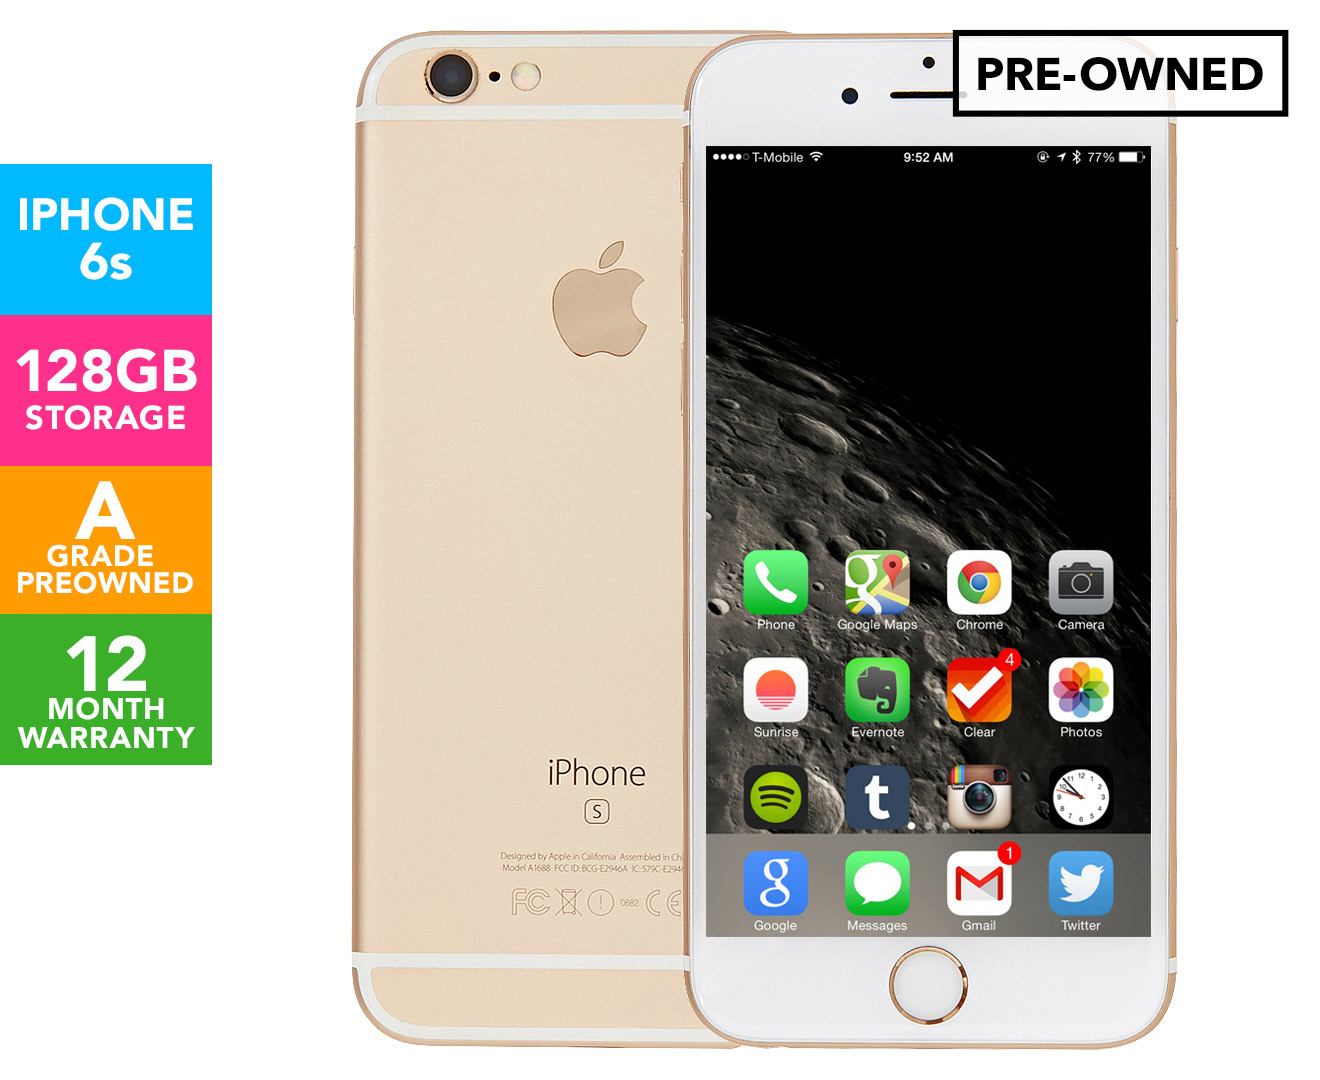 iphone 6 pre owned apple iphone 6s 128gb gold a grade pre owned catch 15053